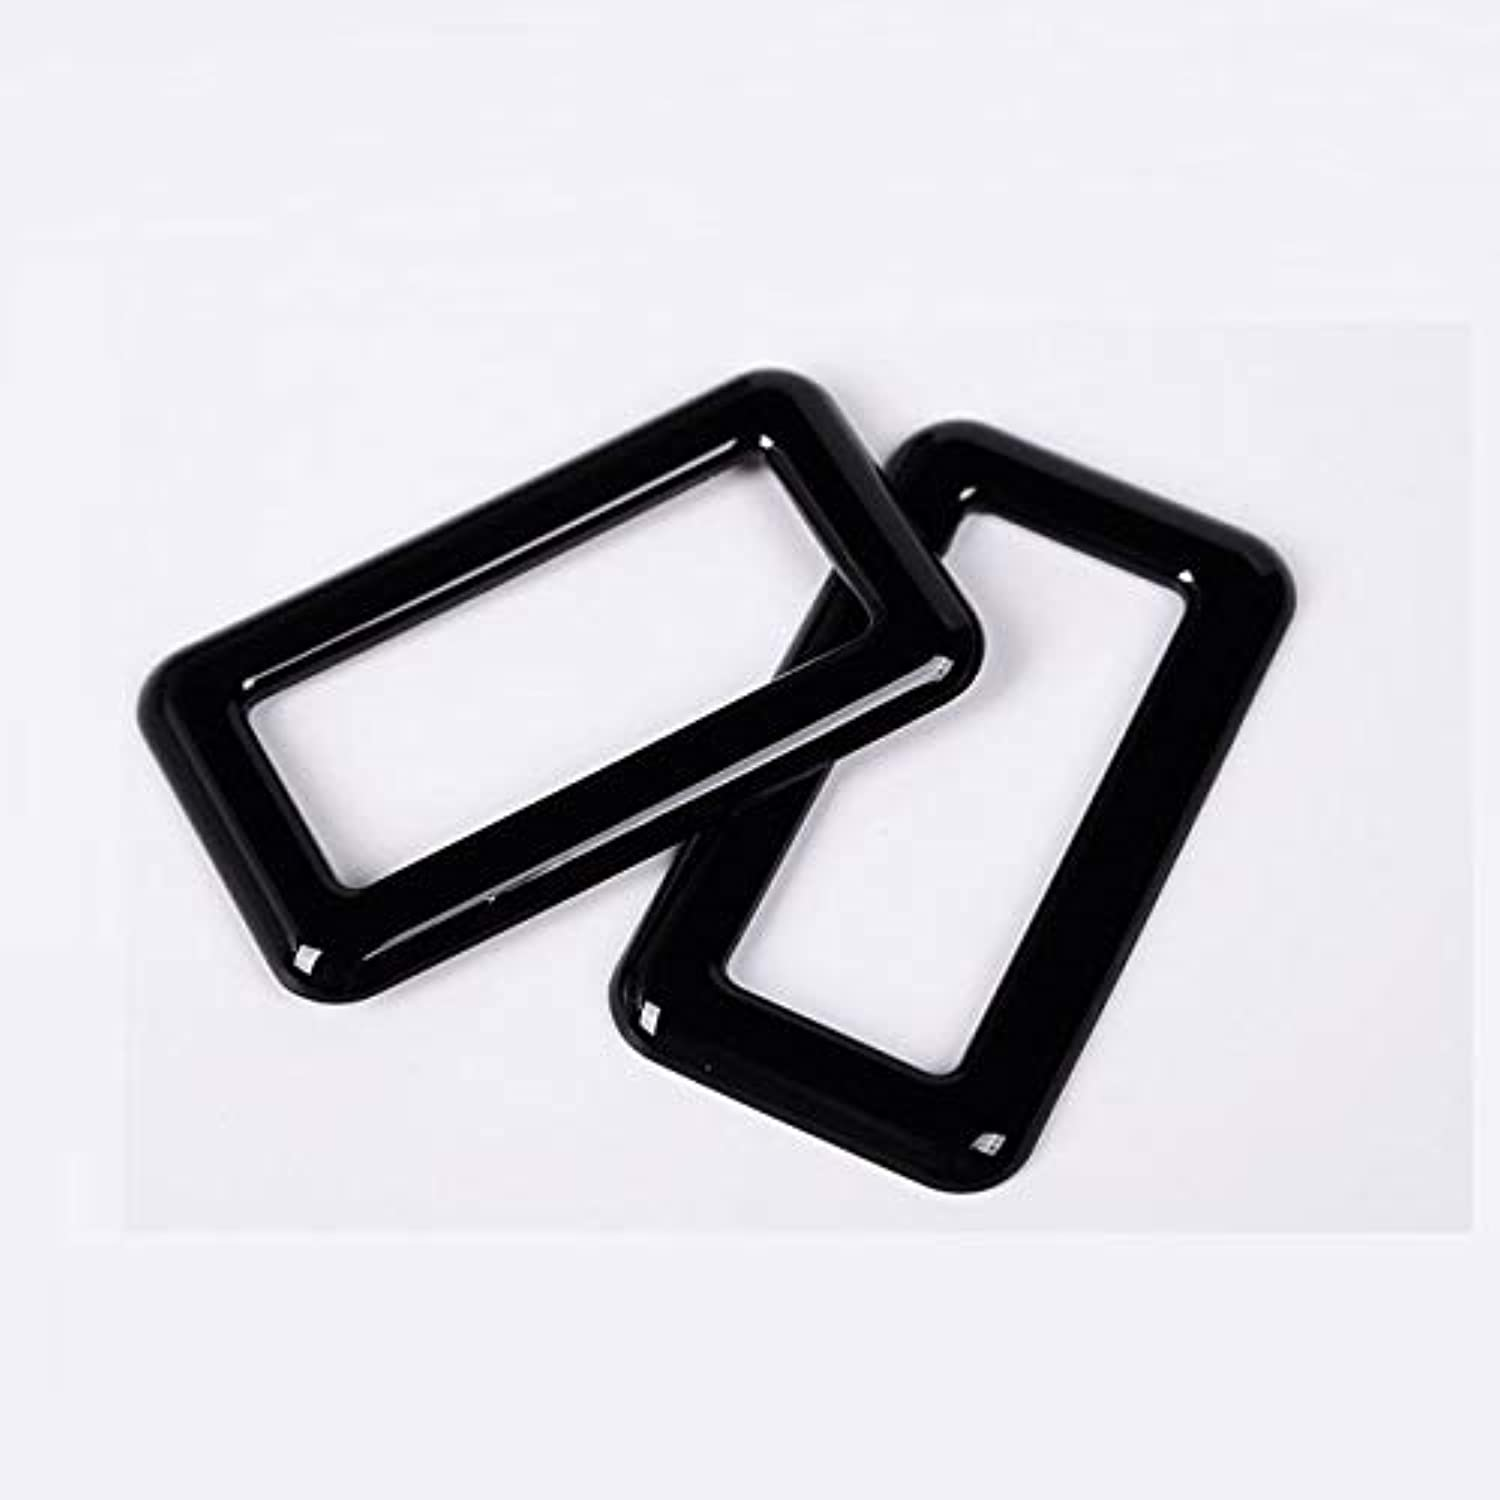 For Land Rover Discovery Sport ABS Chrome Rear Reading Lamp Frame Cover Trim for Jaguar FPace f pace CarStyling 2pcs Set  (color Name  Black)